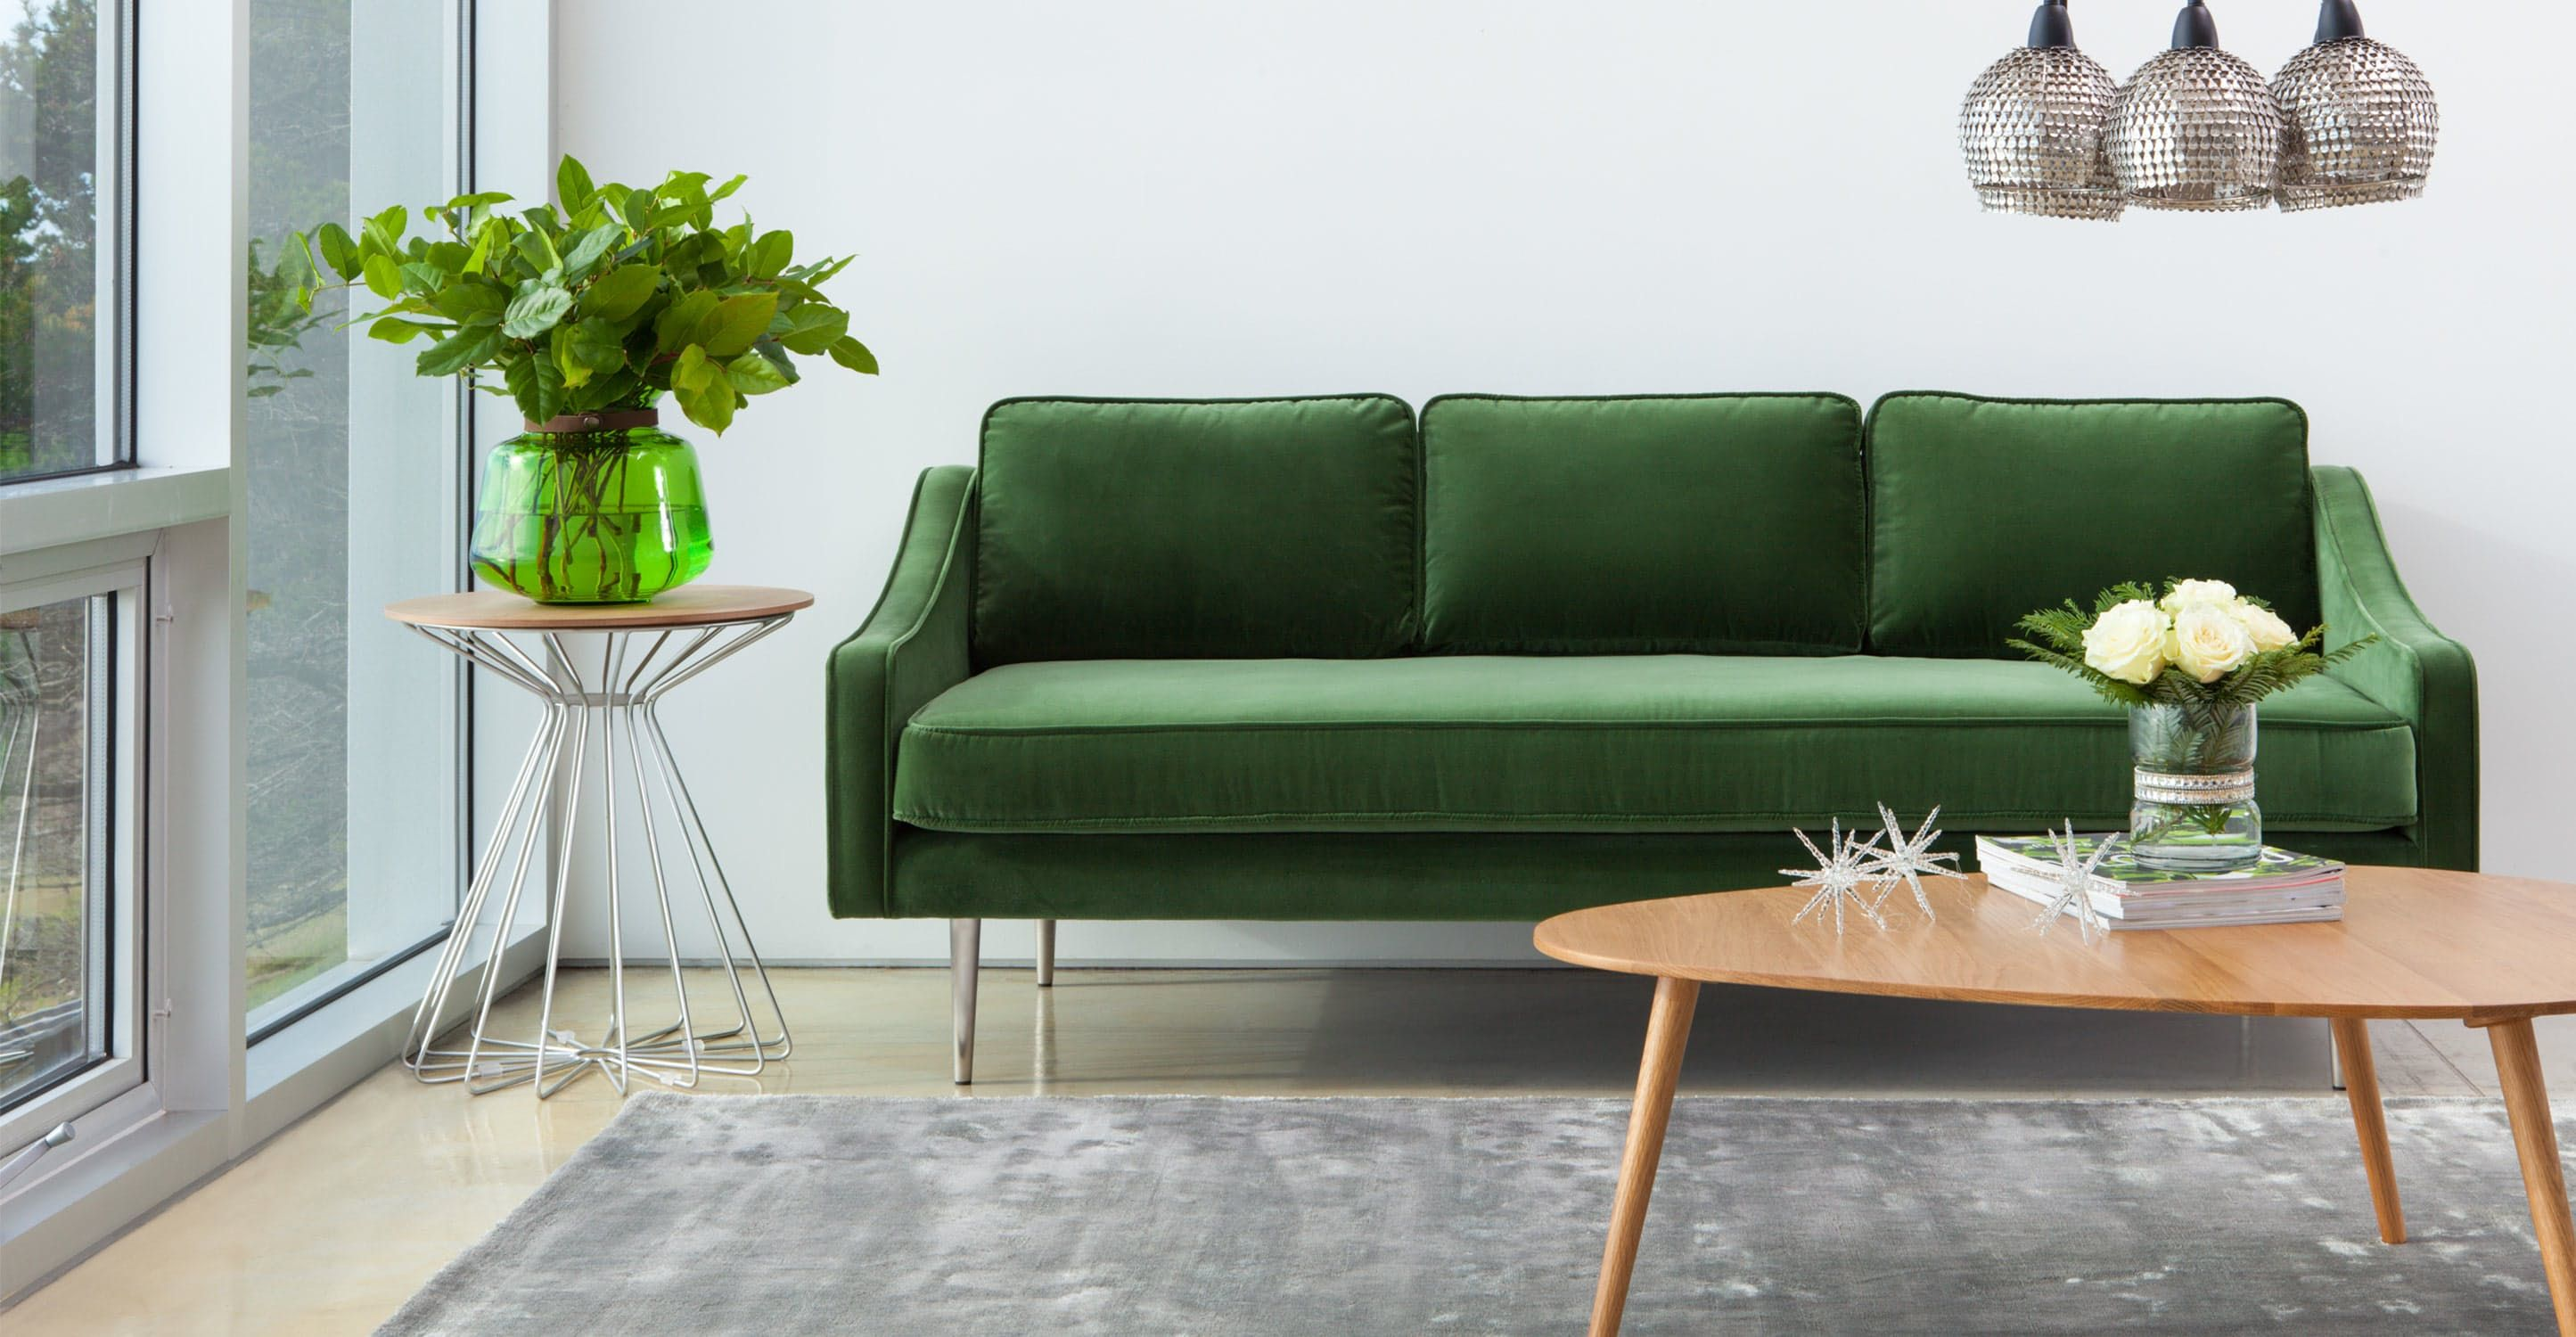 10 modern home decor stores that aren t ikea for the home